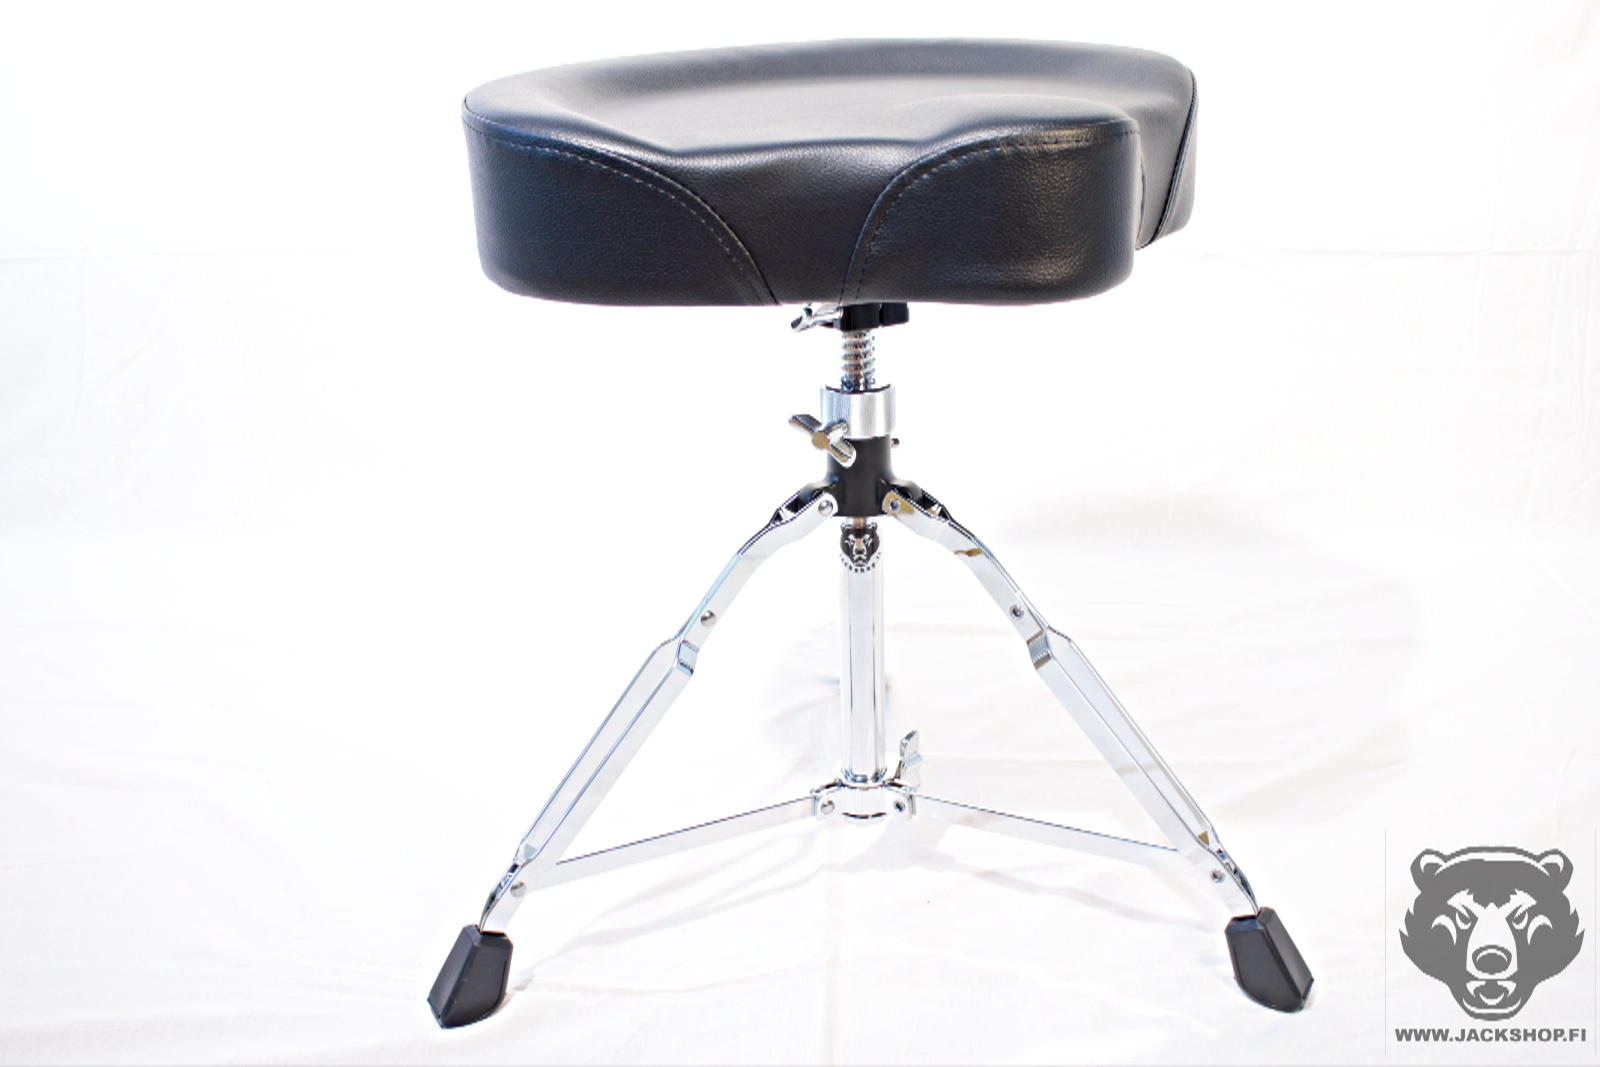 Drum Thrones Jackshop Fi Drum Amp Audiostore